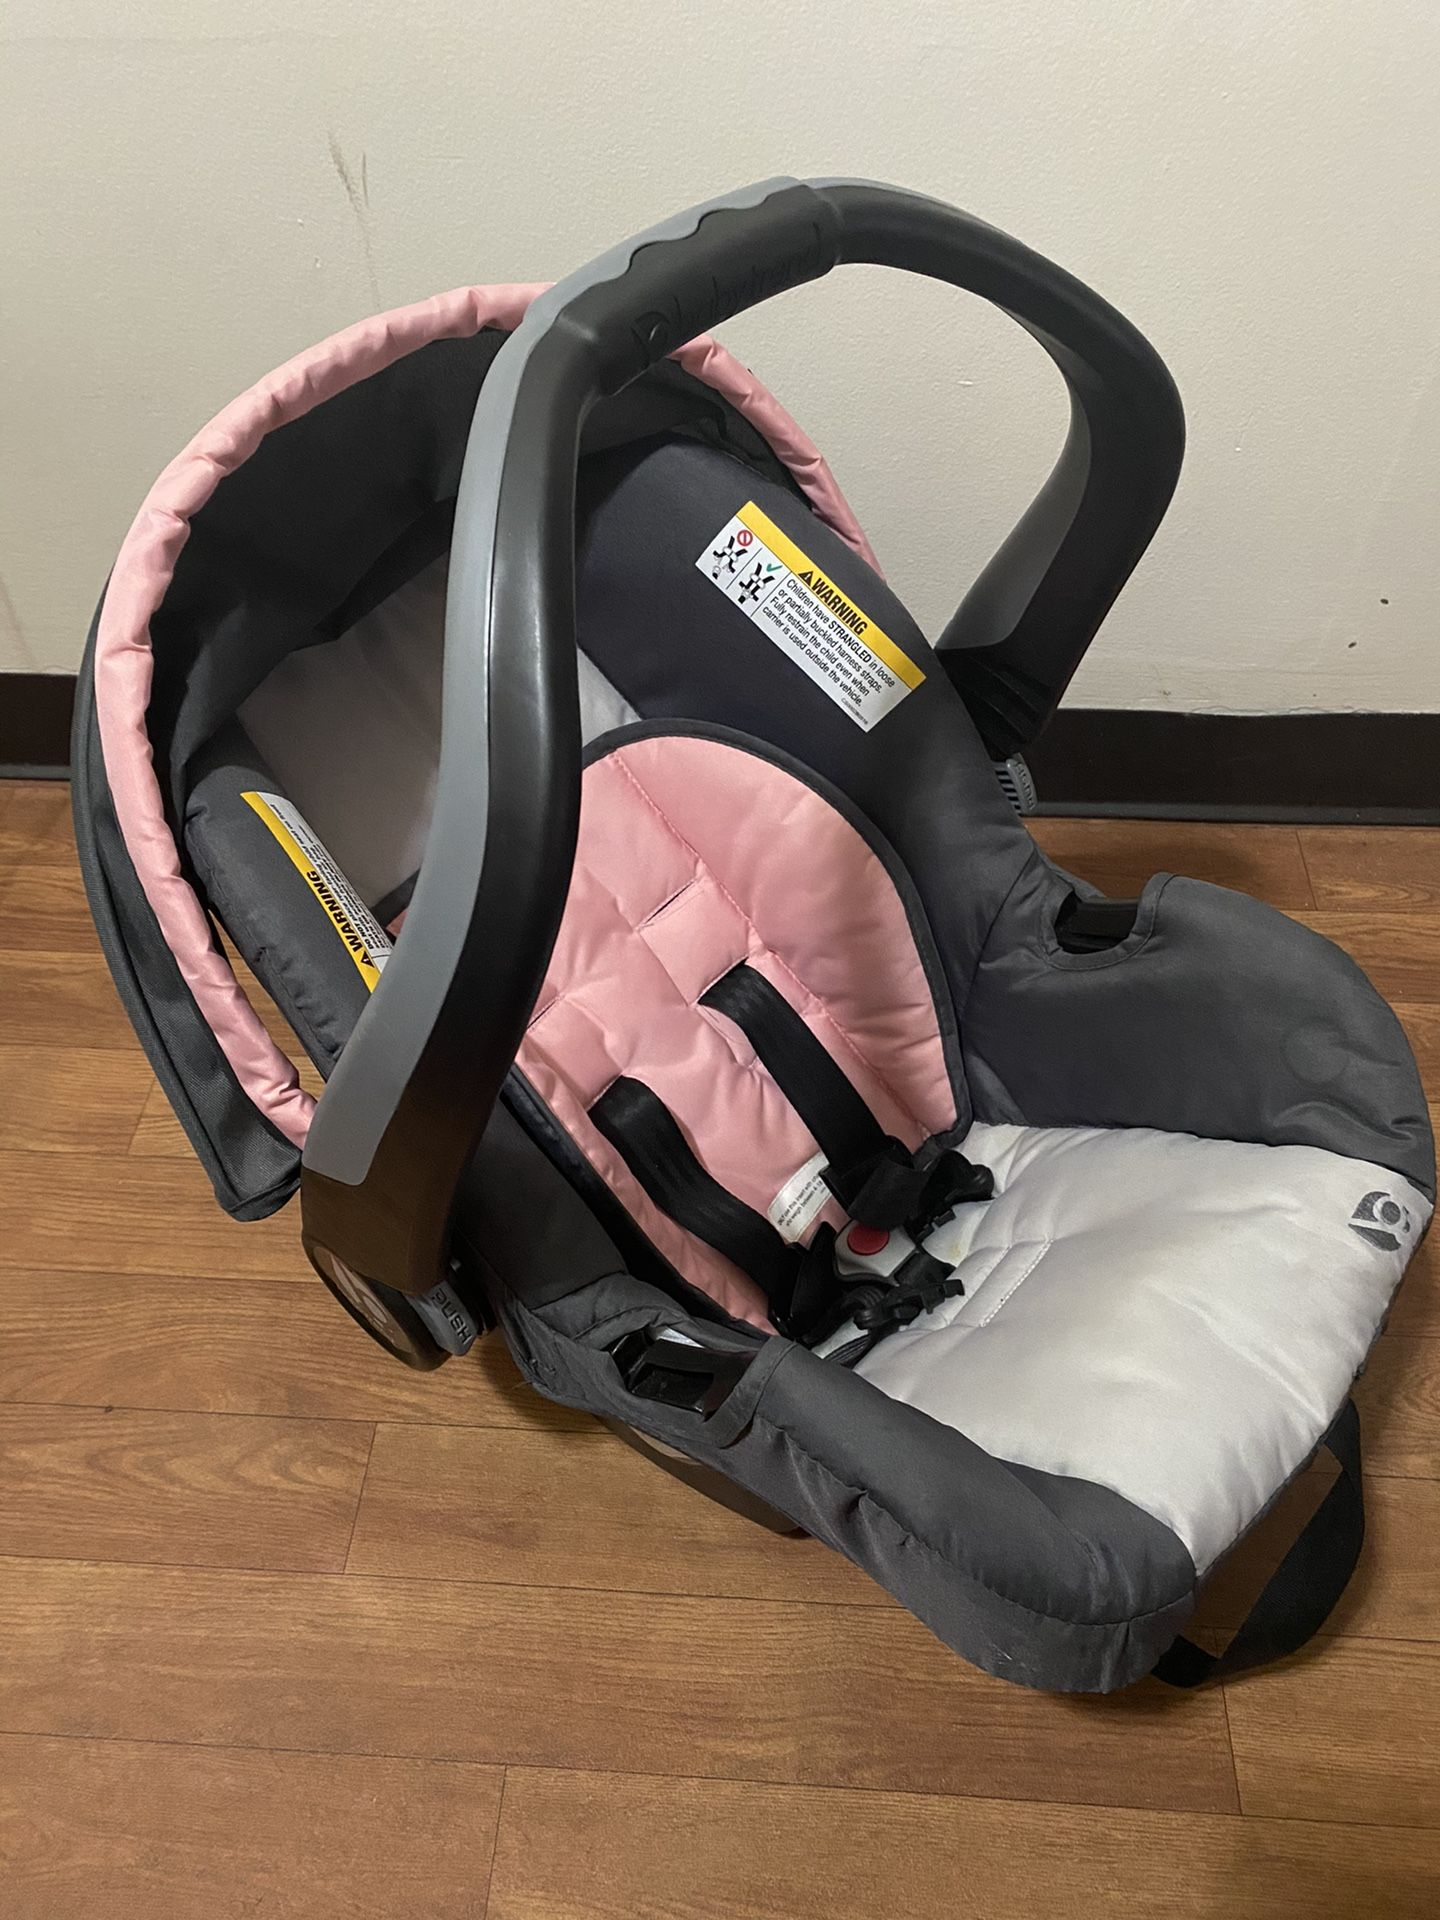 Baby Car Seat w/ retractable overhead shade cover ( BabyTrend )